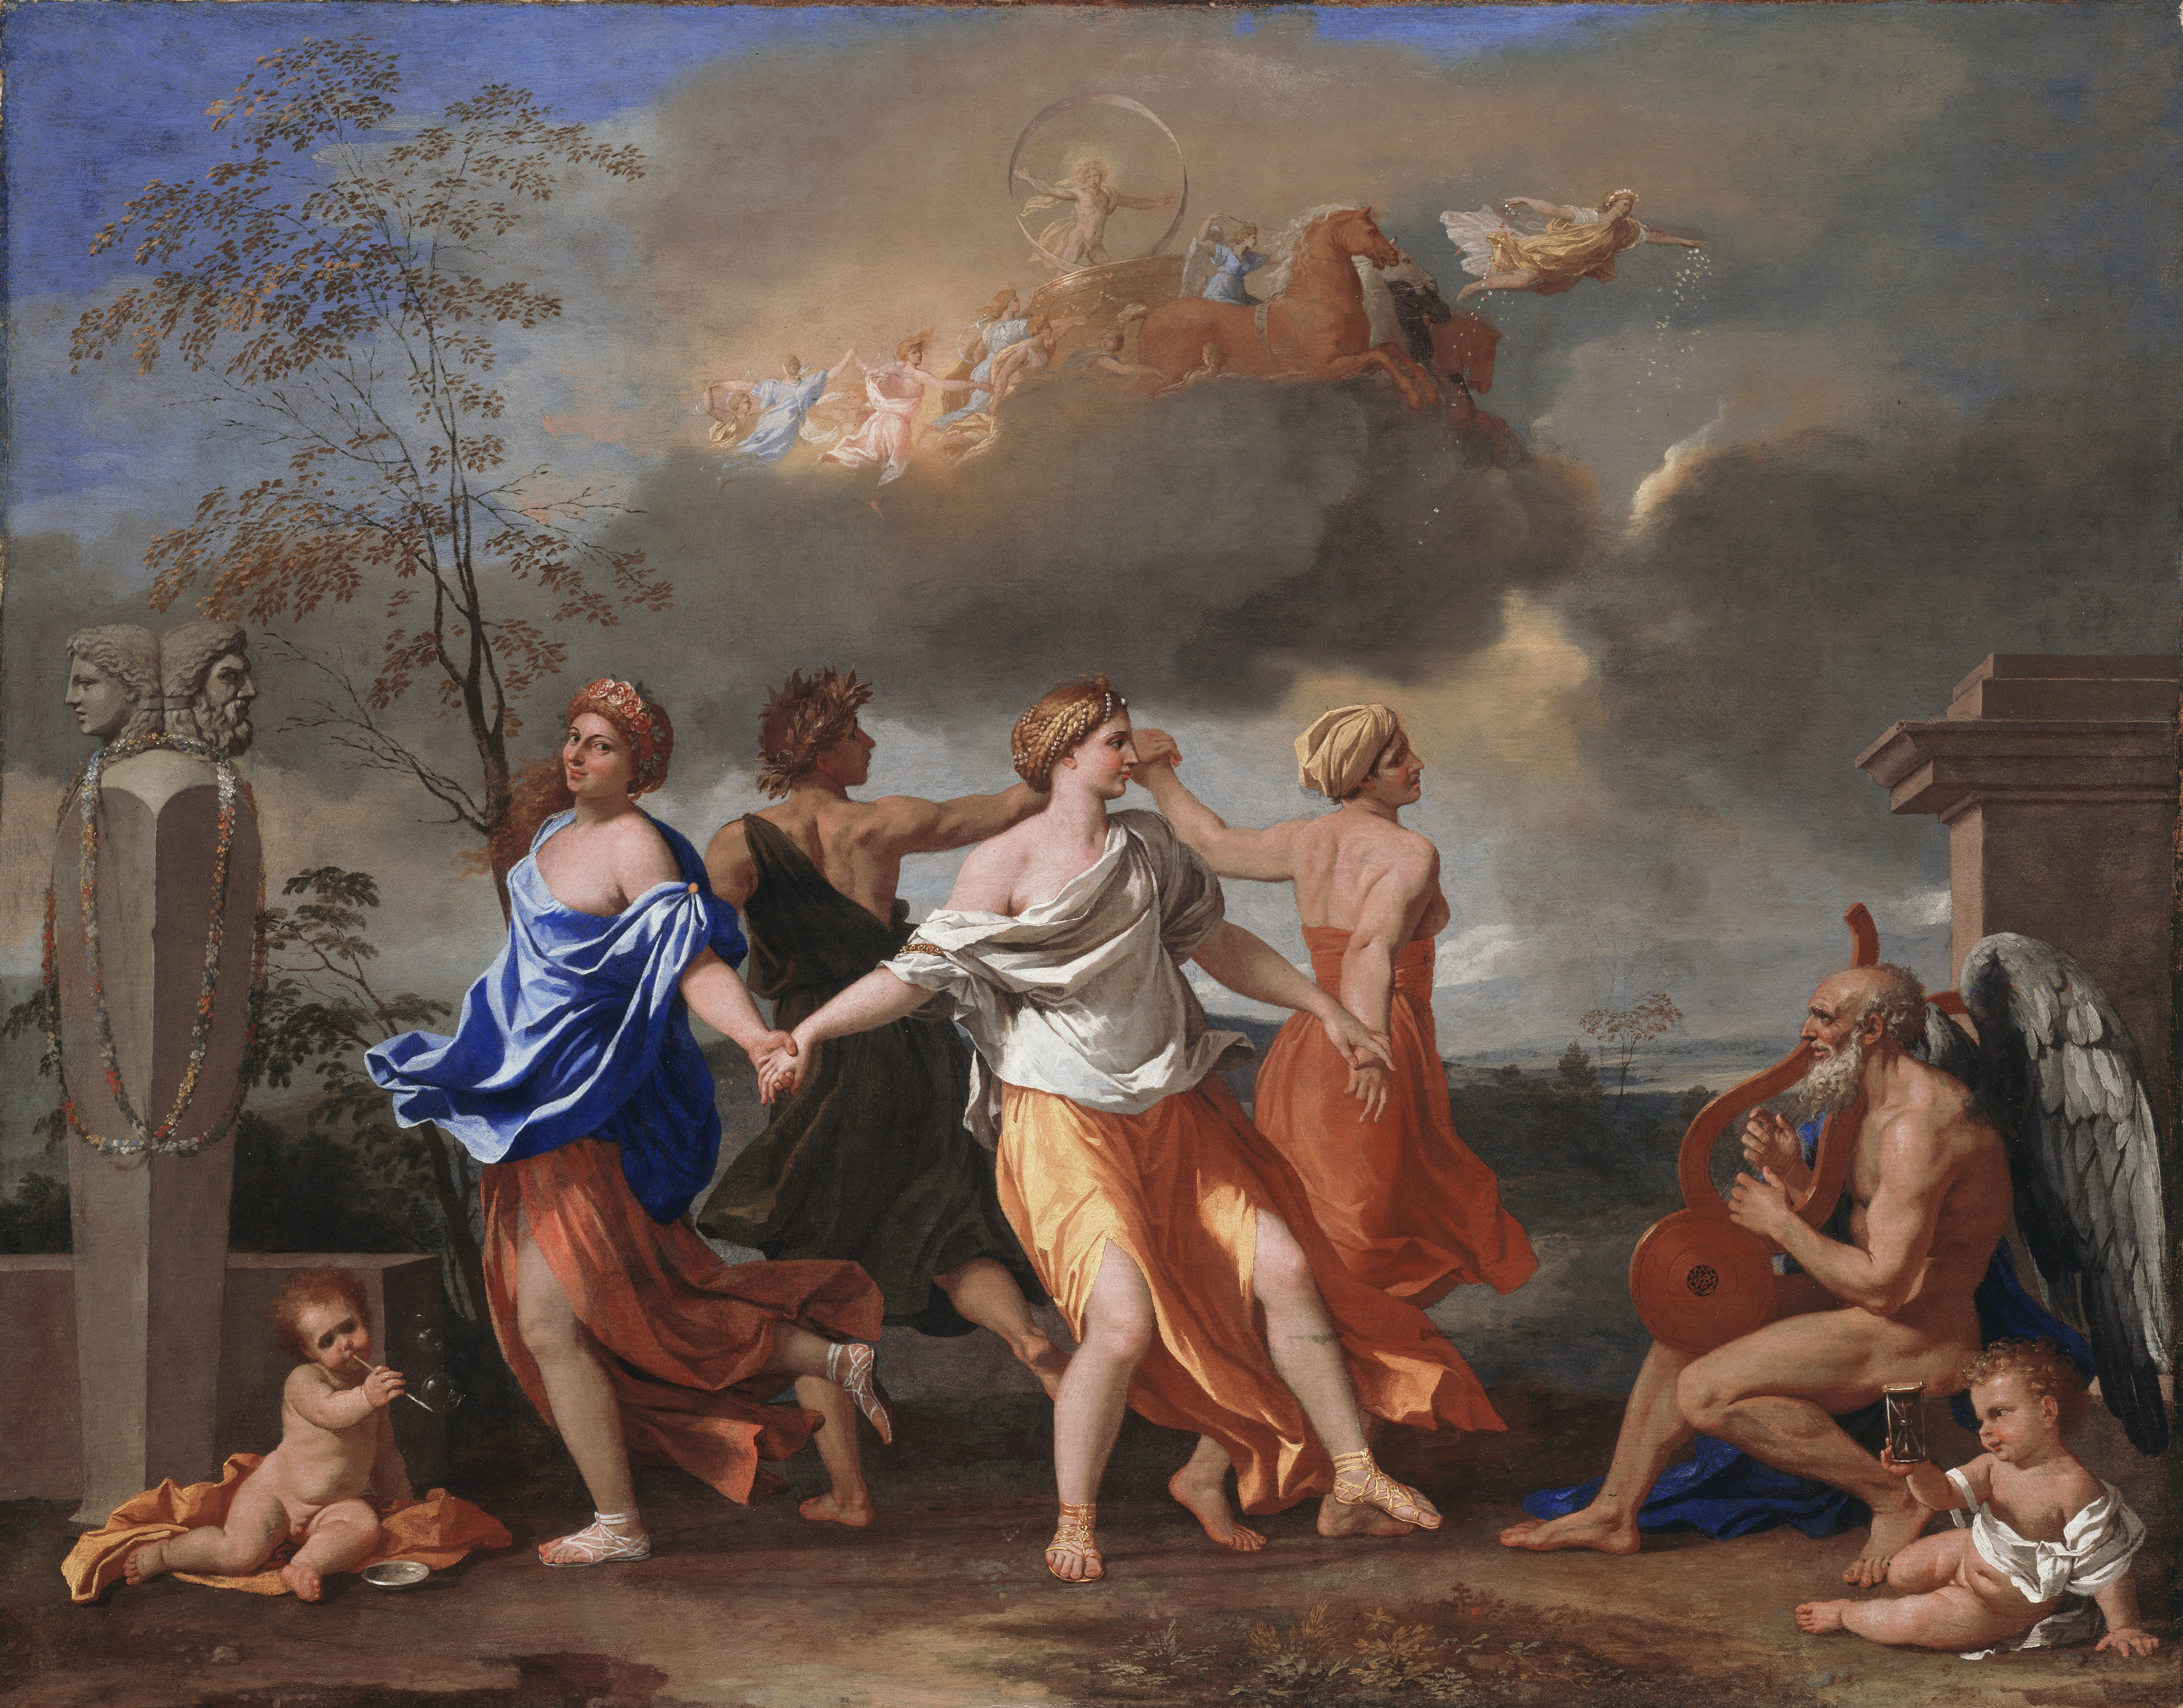 Nicolas Poussin: Dance to the Music of Time, oil on canvas, 82.5 x 104 cm, c. 1634-6, (London: The Wallace Collection, Object No. P108), image courtesy of The Wallace Collection